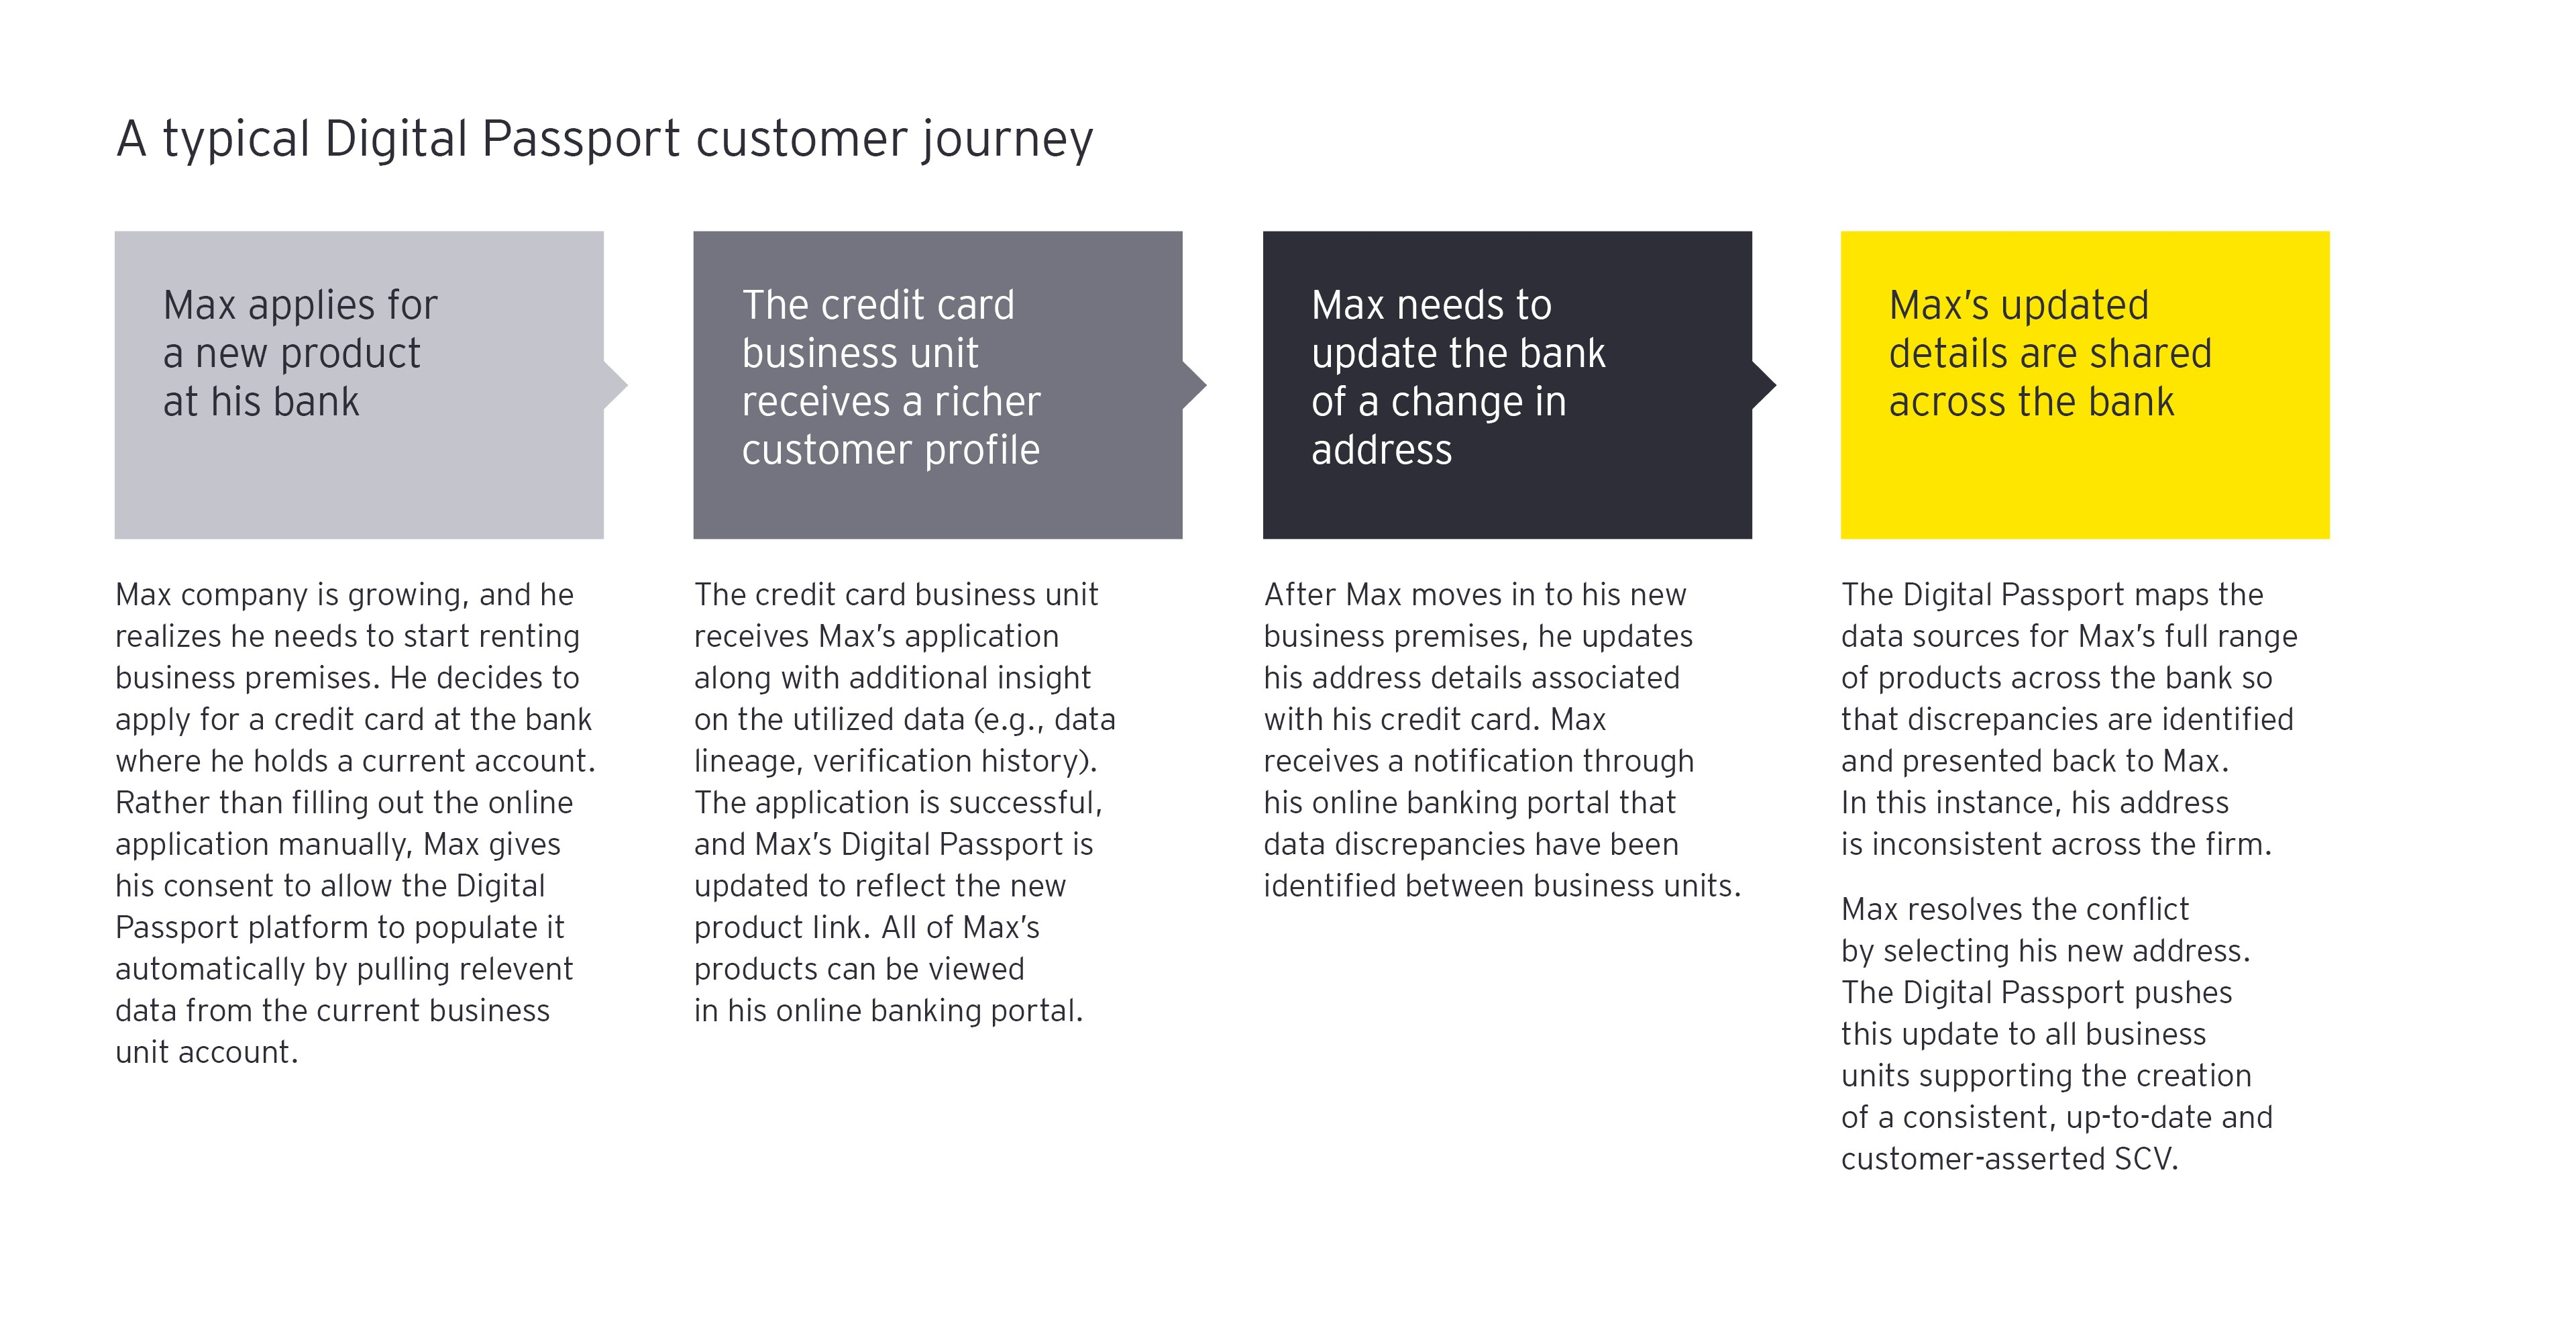 A typical digital passport customer journey